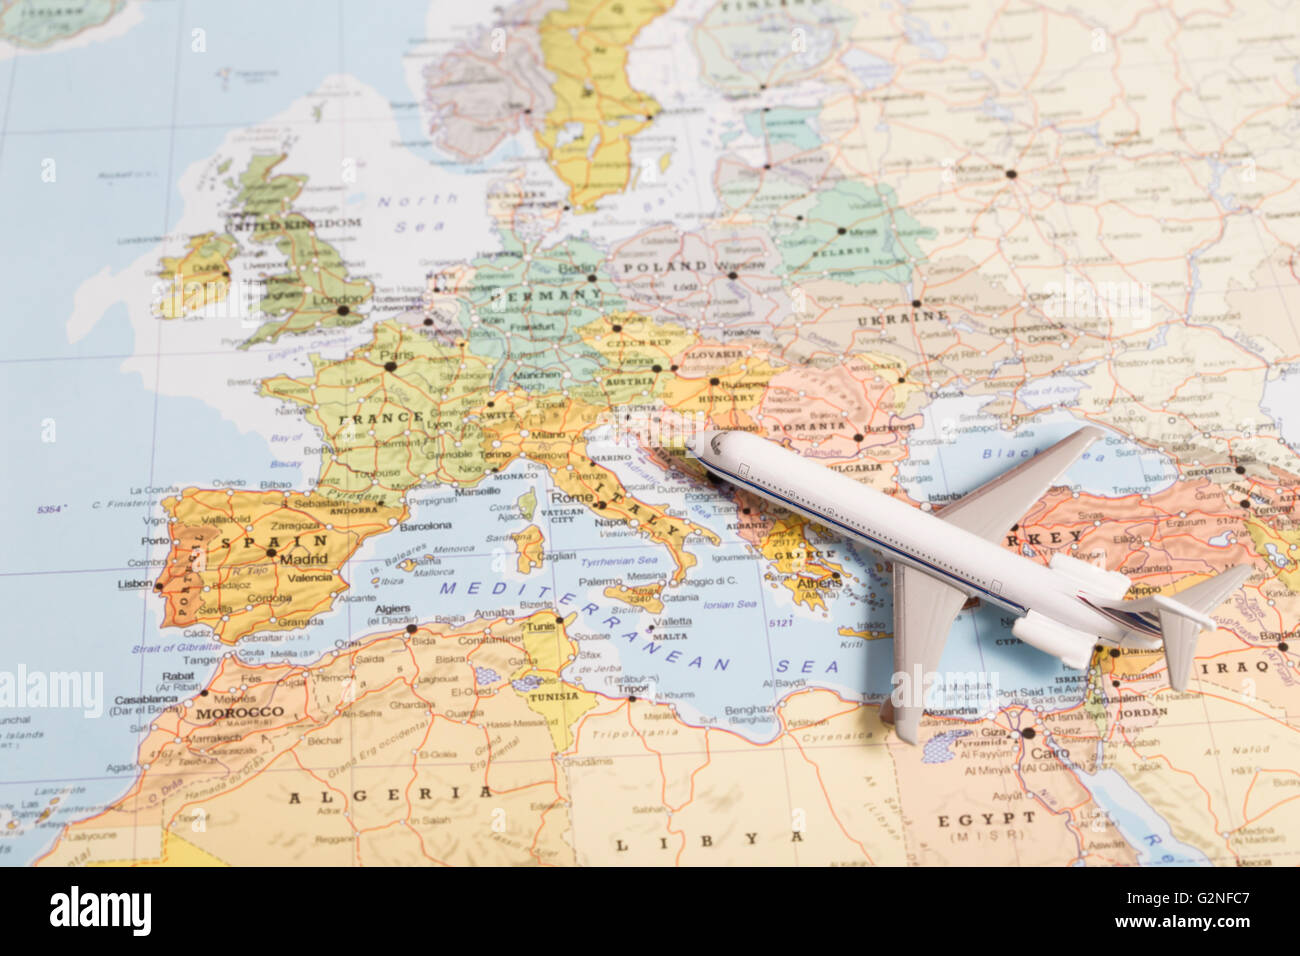 Miniature Travel Map Europe Stock Photos Miniature Travel Map